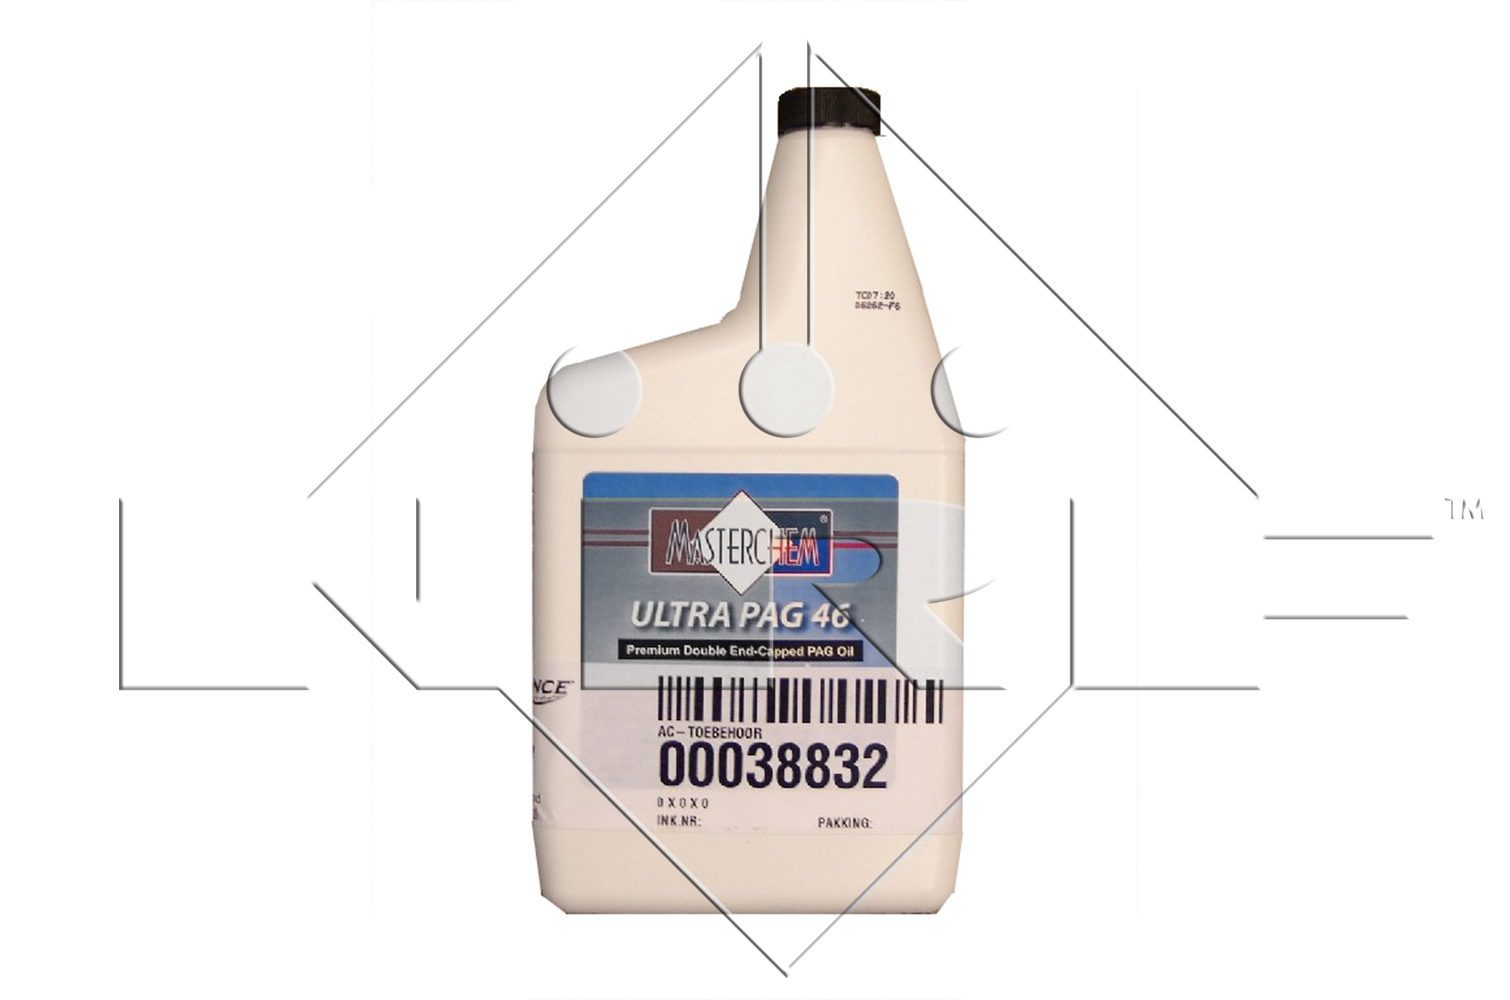 38832 pag iso46 double end capped 944ml